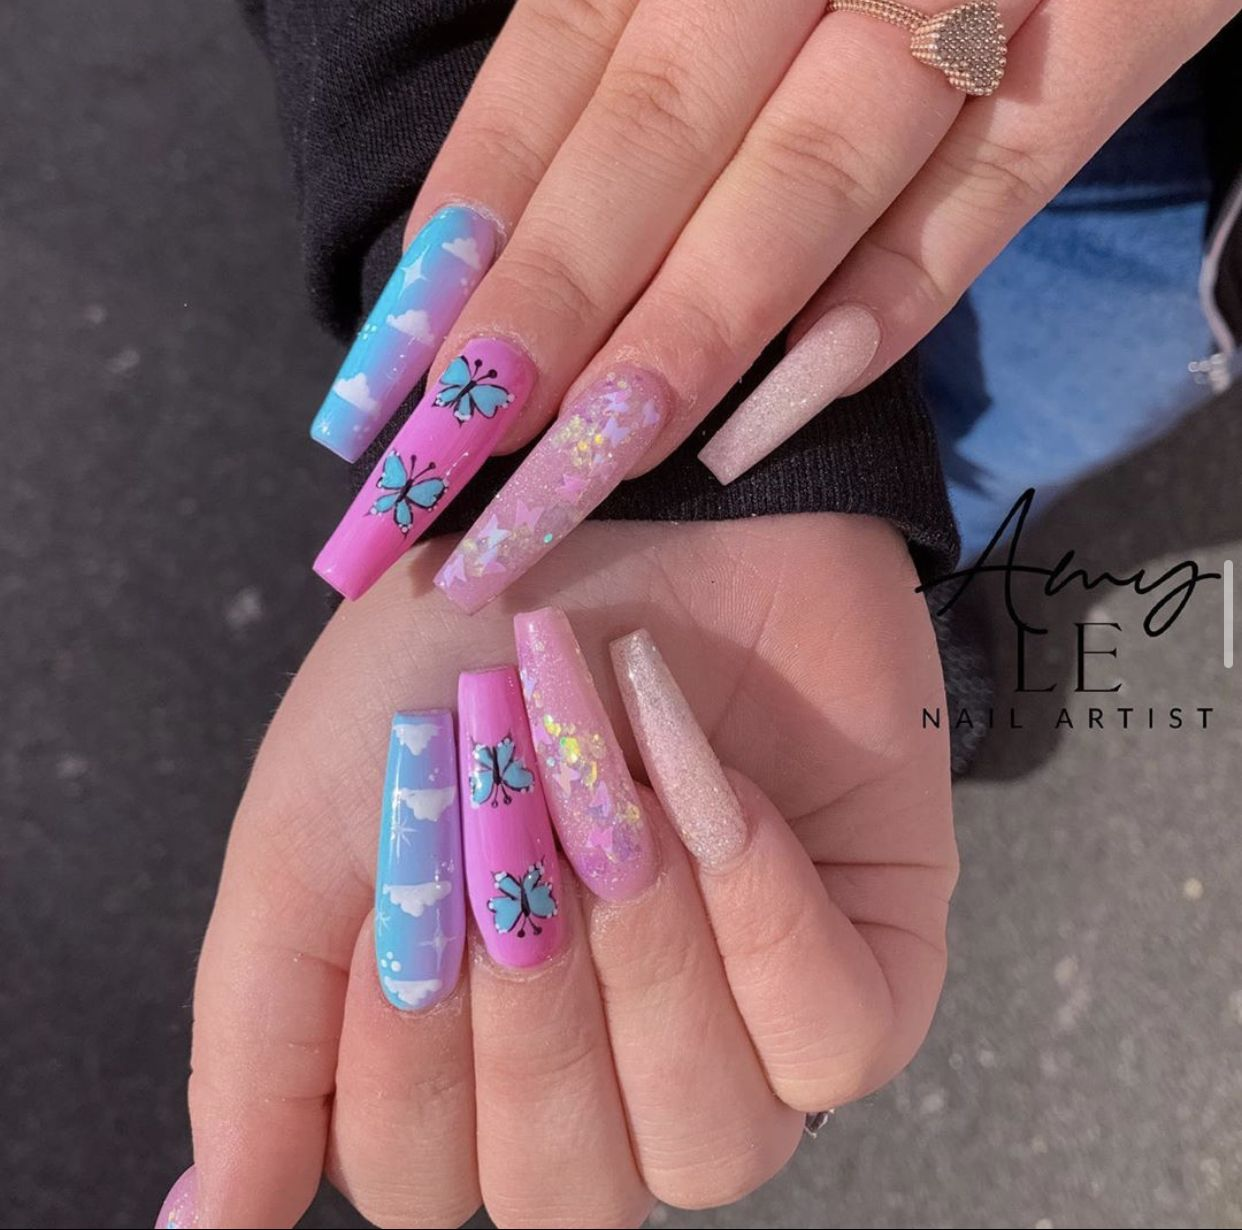 Colorful Pastel Coffin Pink And Blue Butterfly Glitter Aesthetic Cloud Acrylic Nails In 2020 Acrylic Nails Bling Nails Best Acrylic Nails